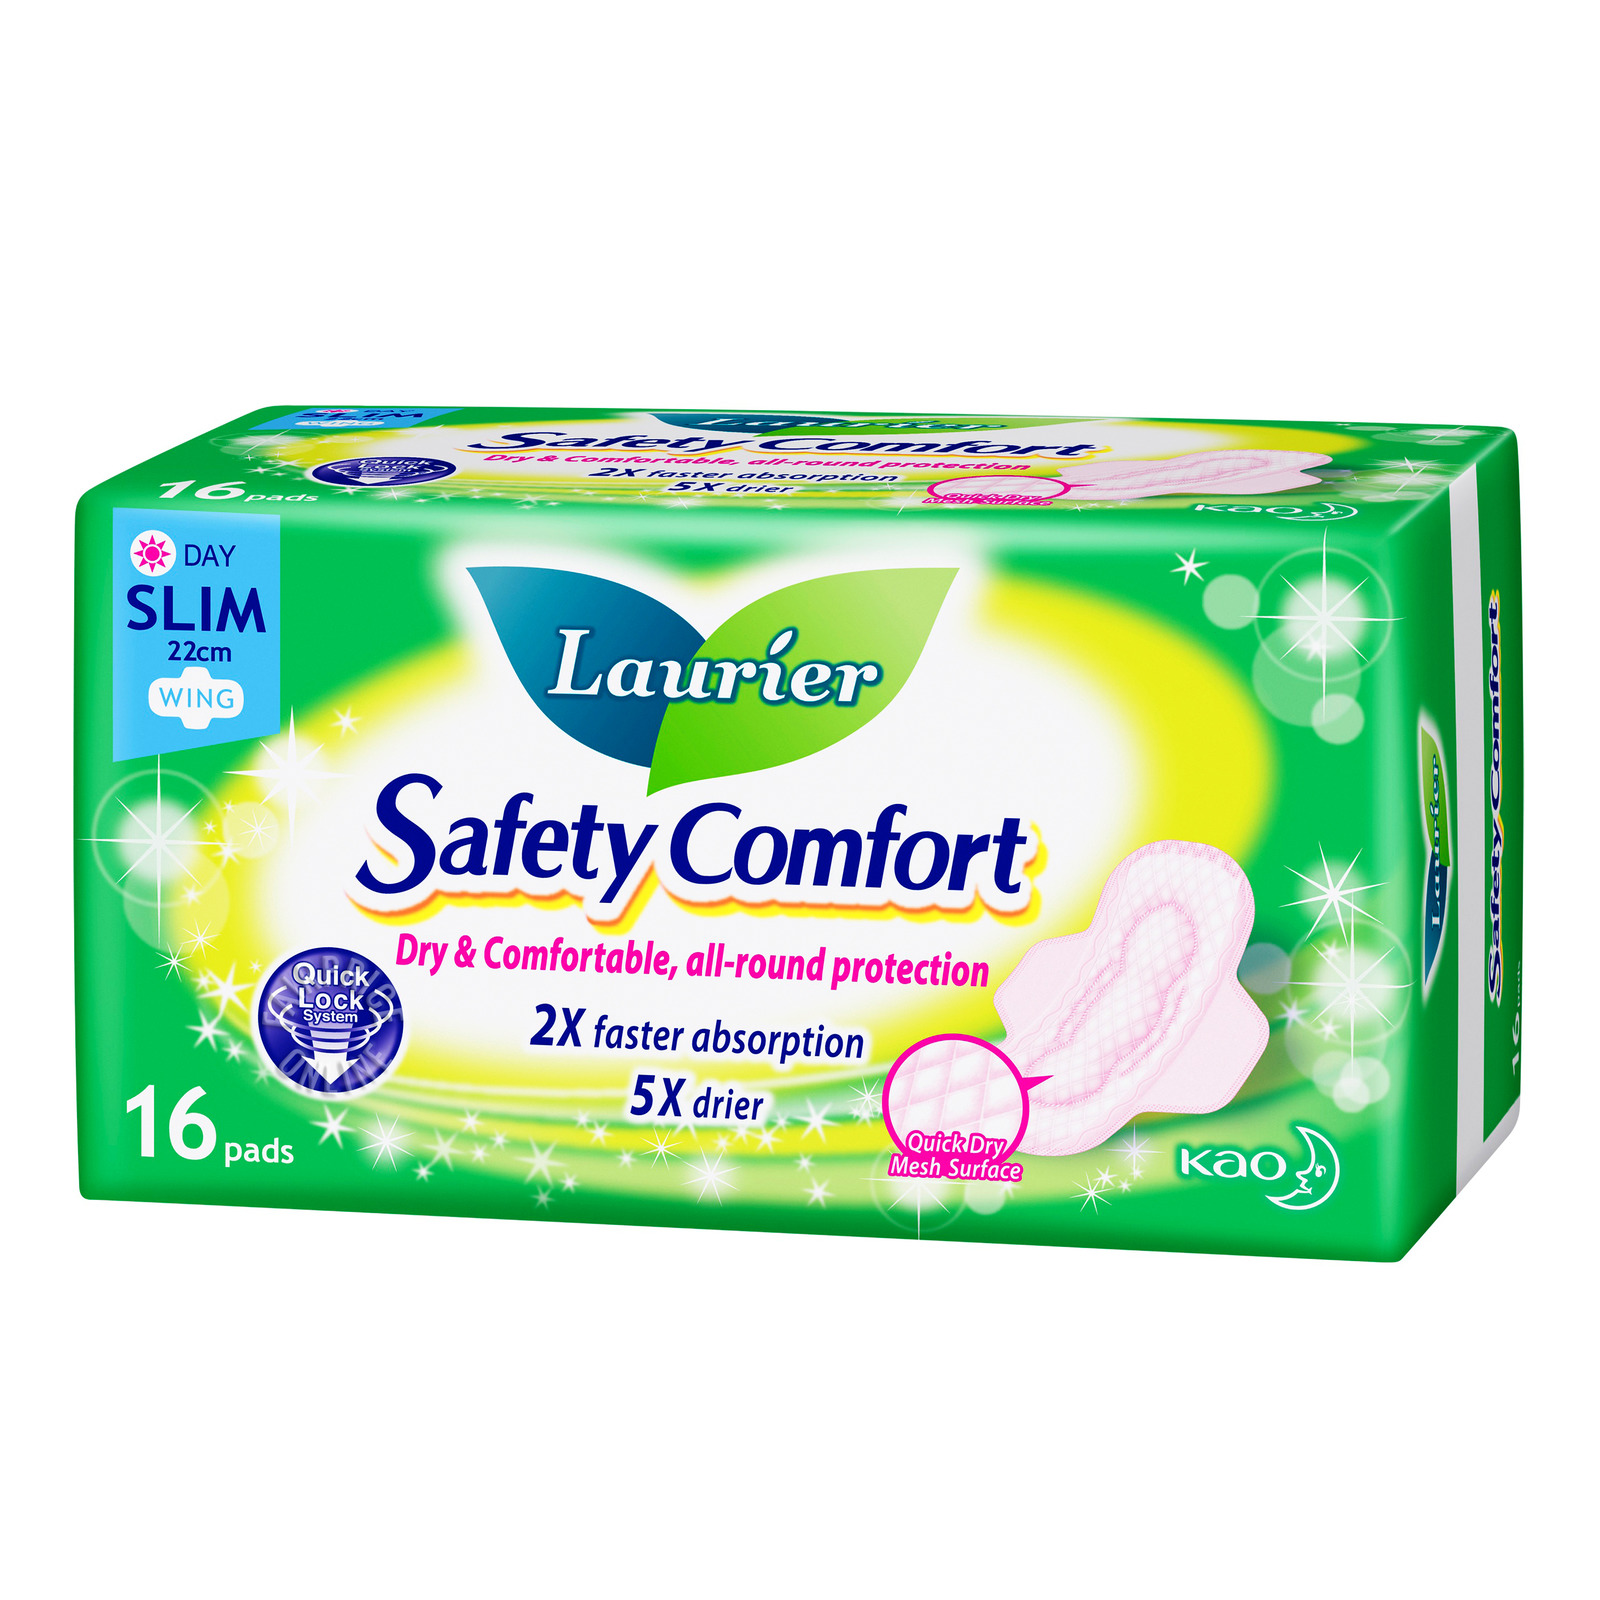 Laurier Safety Comfort Day Pads - Slim Wing (22cm)